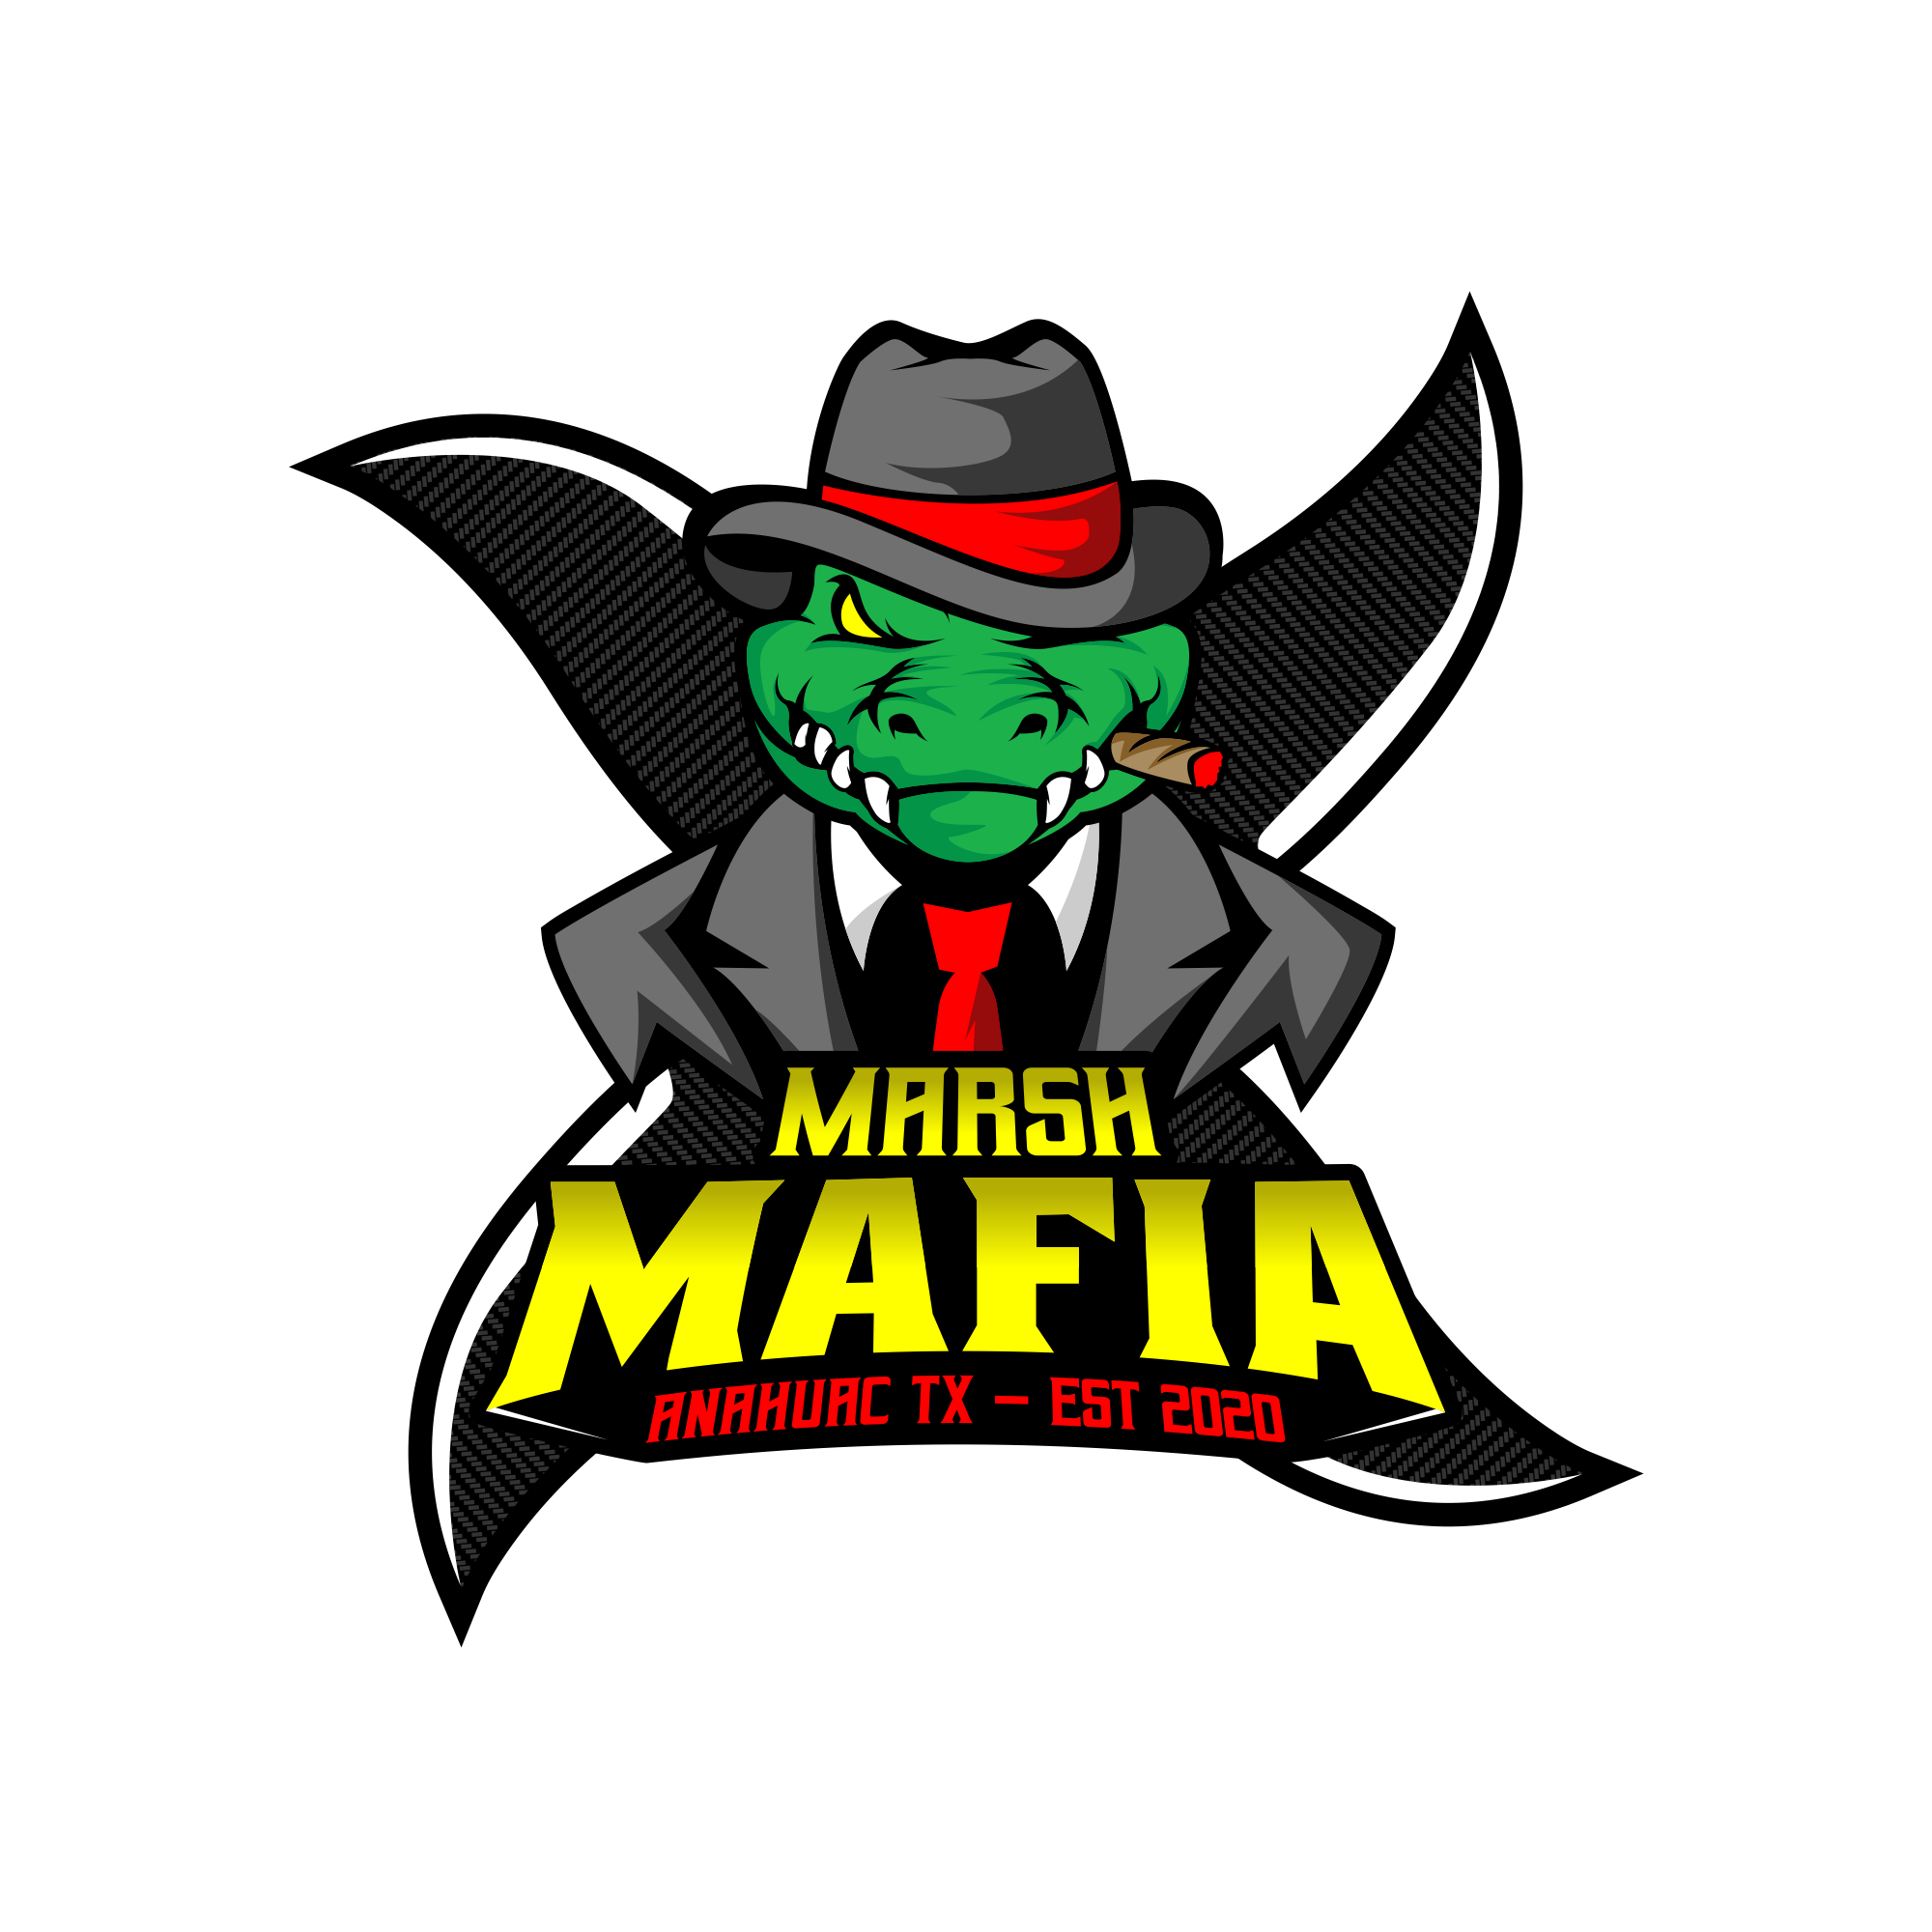 Airboat Logo for our Airboat Club - Mafia type design with Gator Head